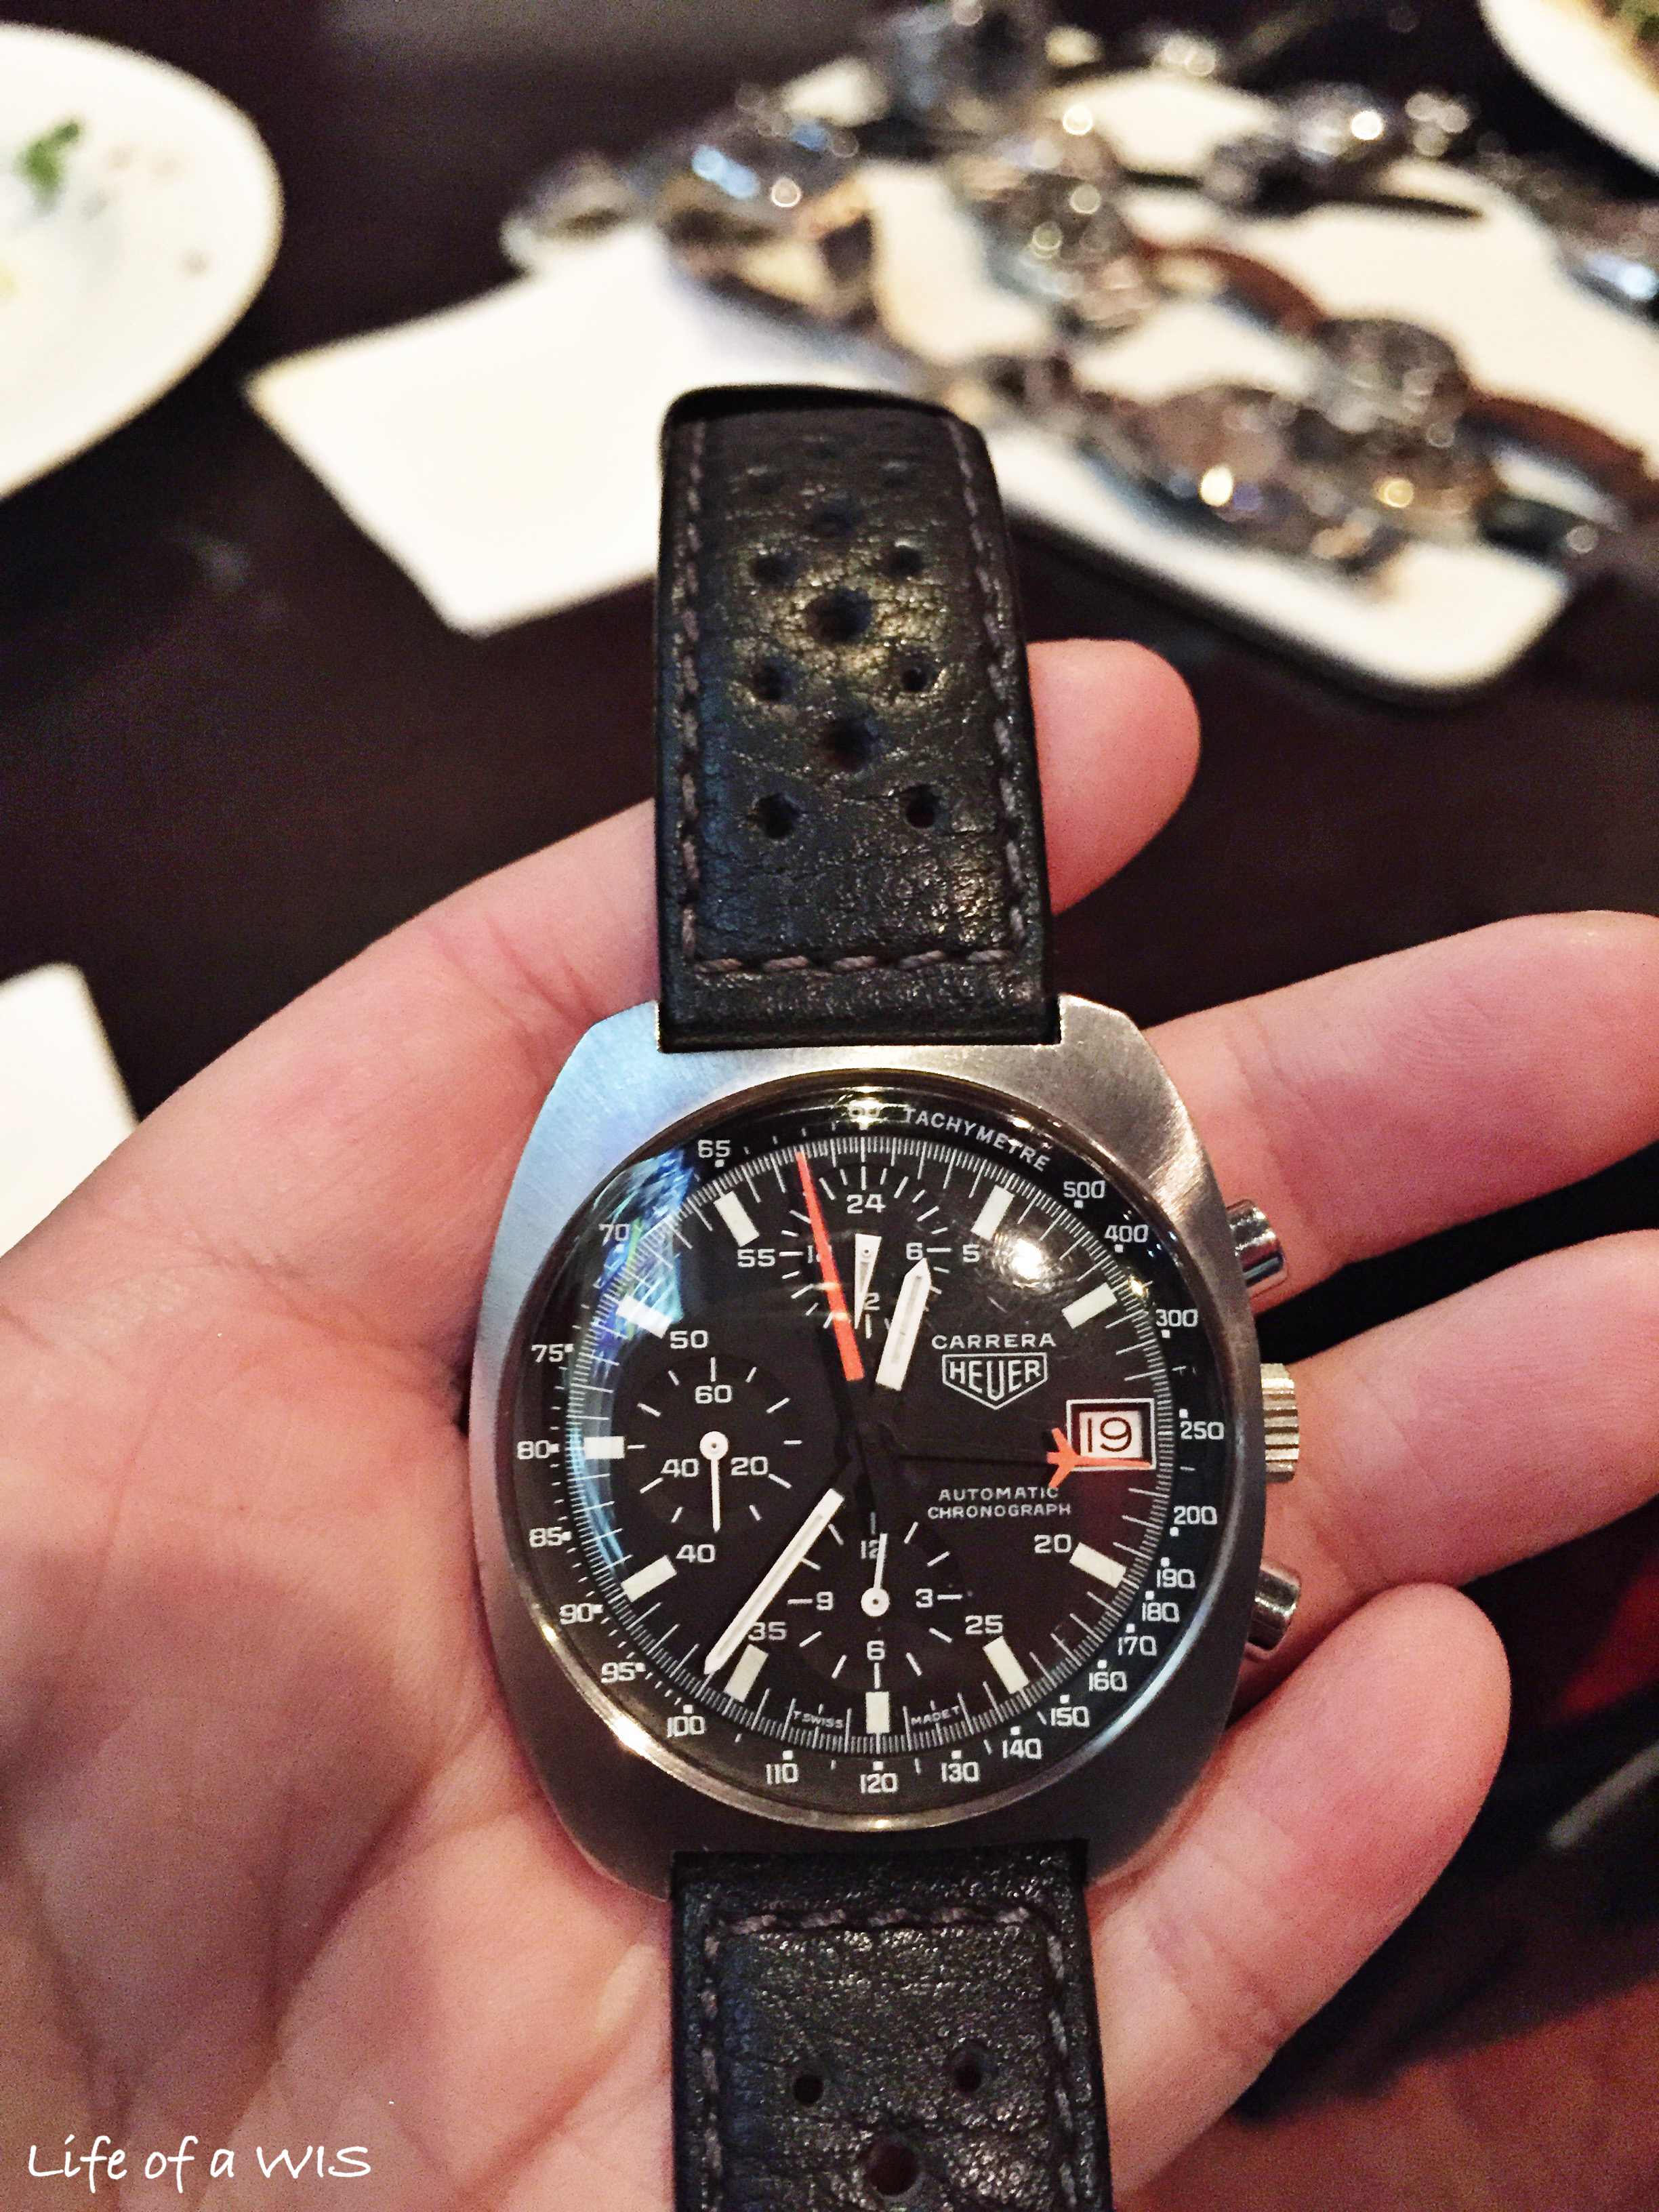 Why is there love for Heuer but no love for TAG Heuer?